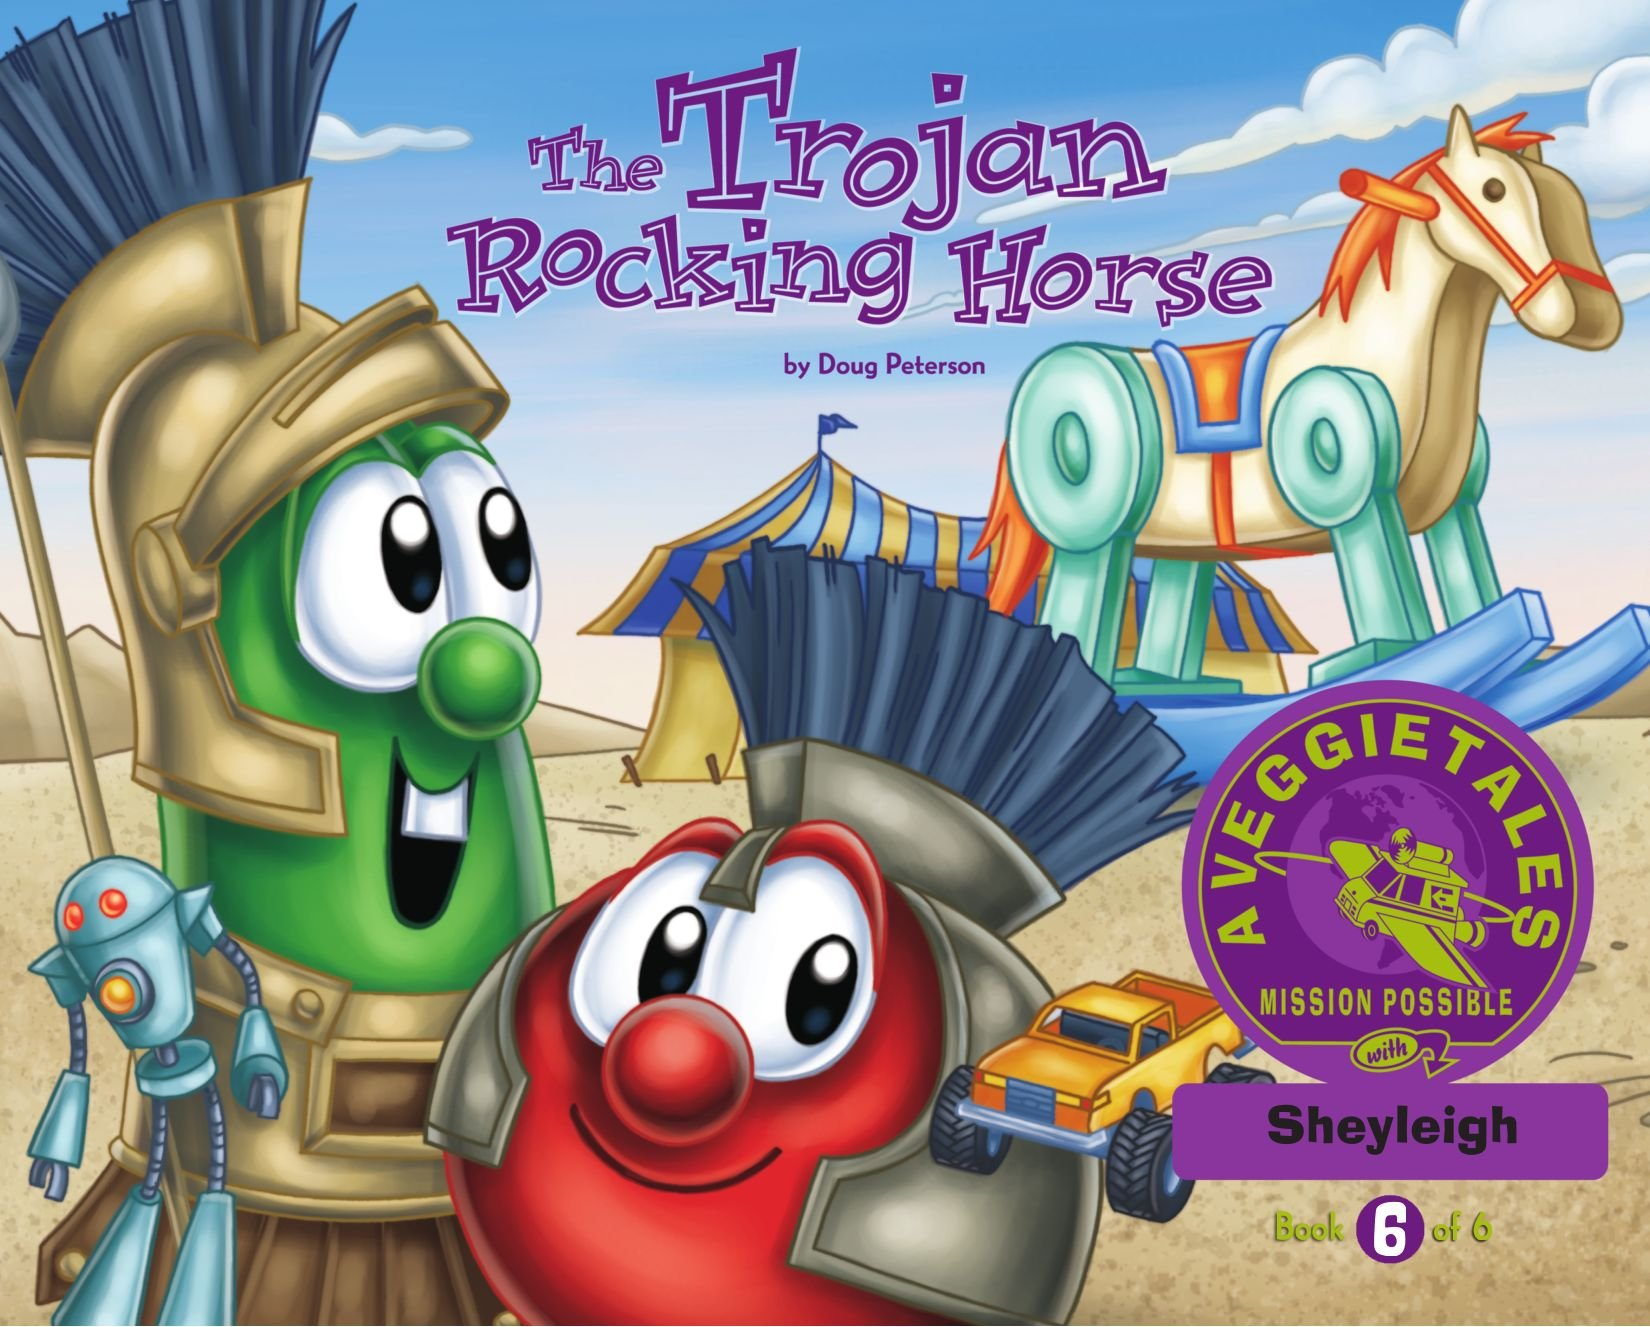 Download The Trojan Rocking Horse - VeggieTales Mission Possible Adventure Series #6: Personalized for Sheyleigh (Girl) PDF